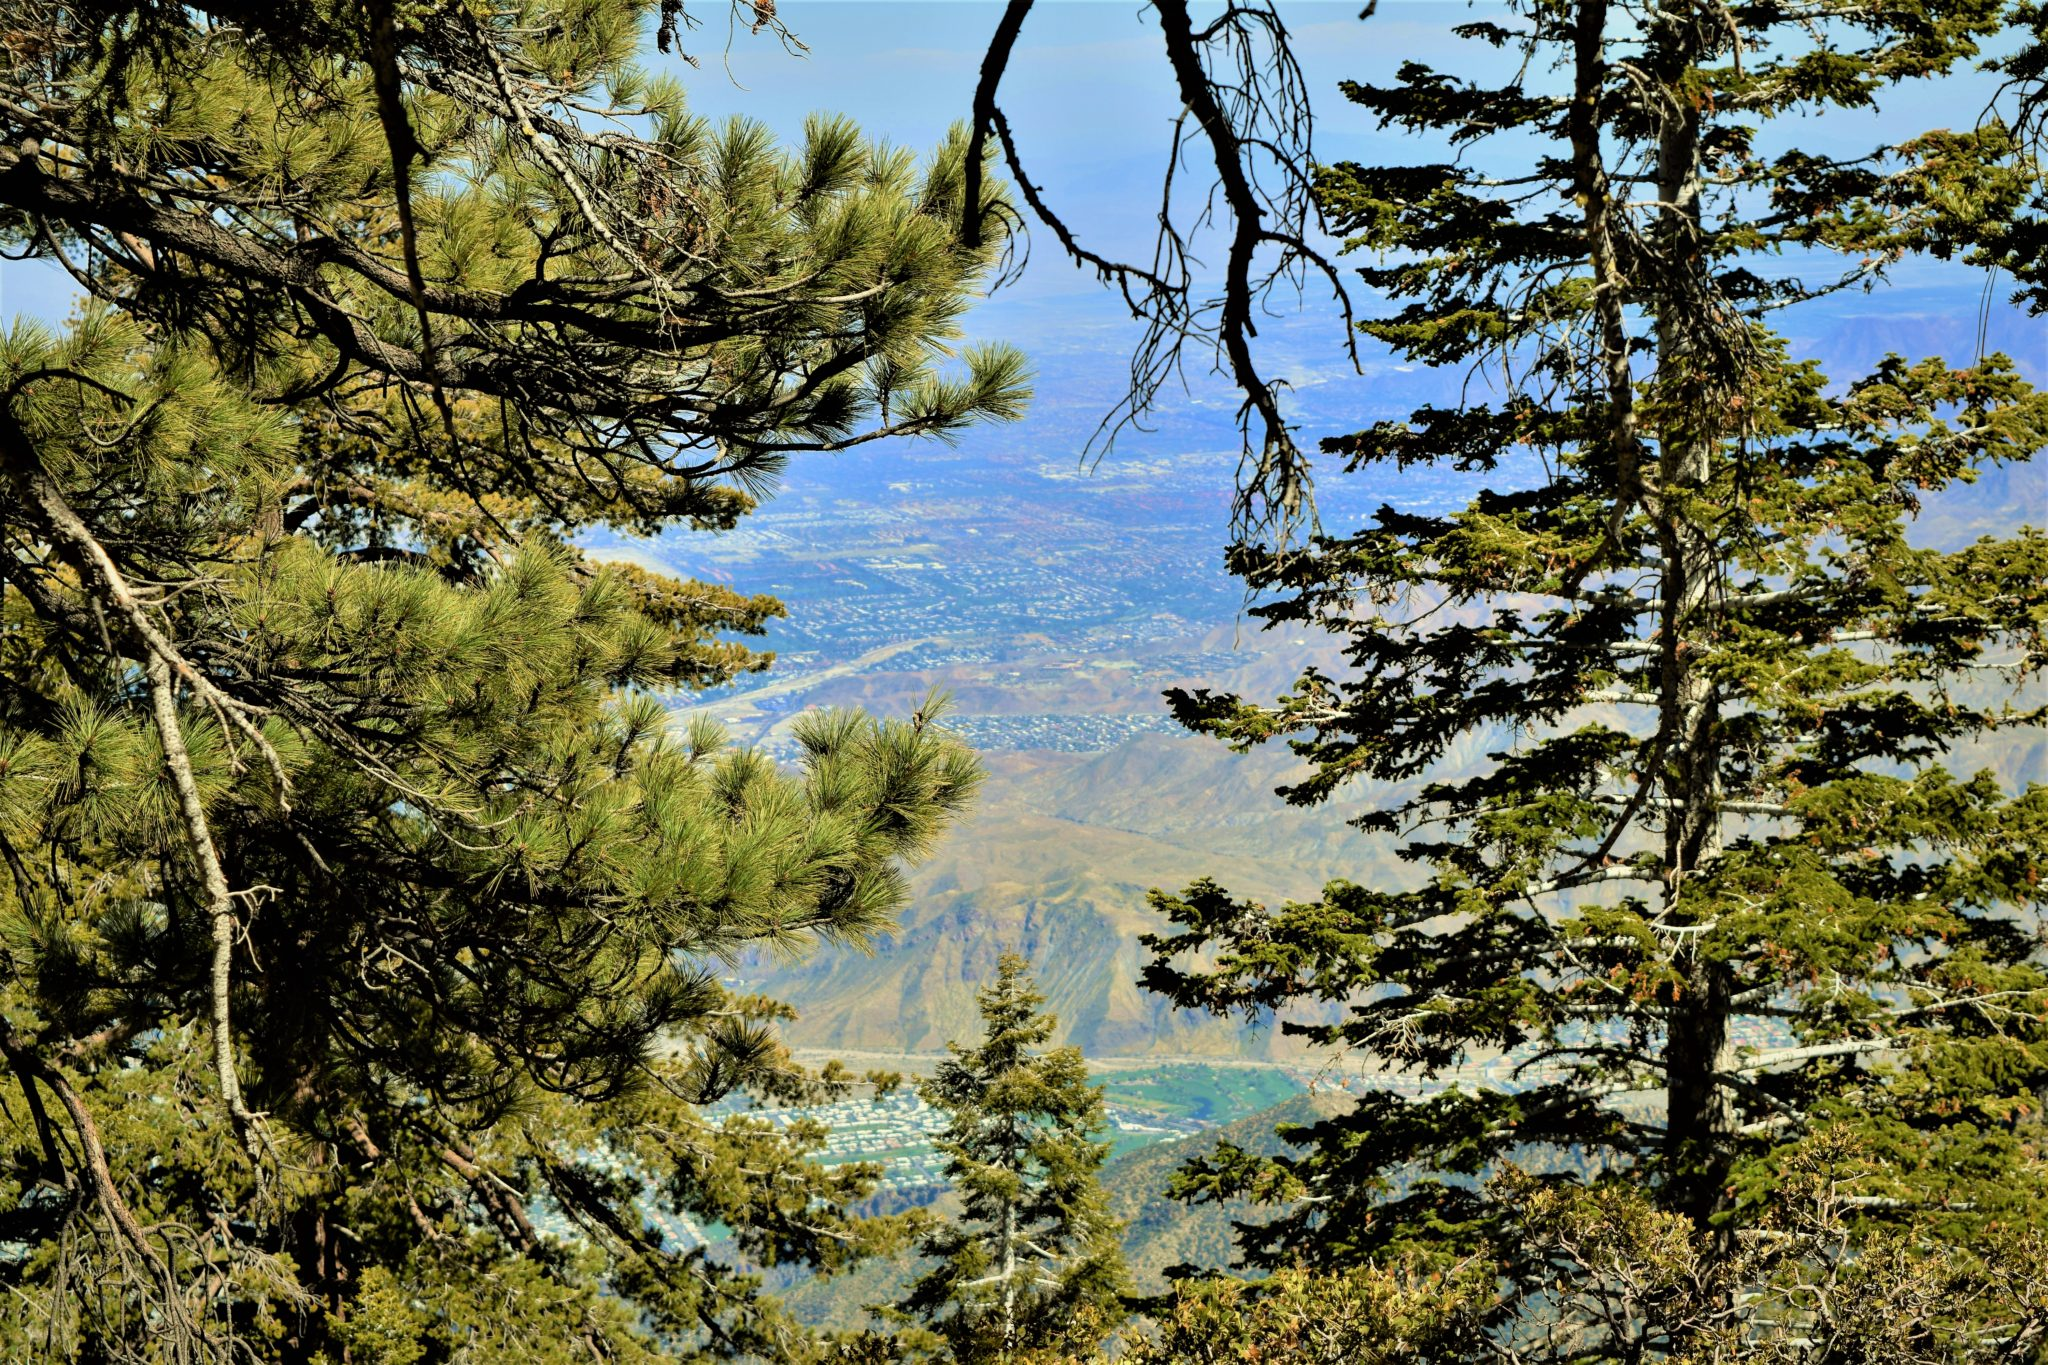 View point desert view trail san jacinto state park, palm springs, california